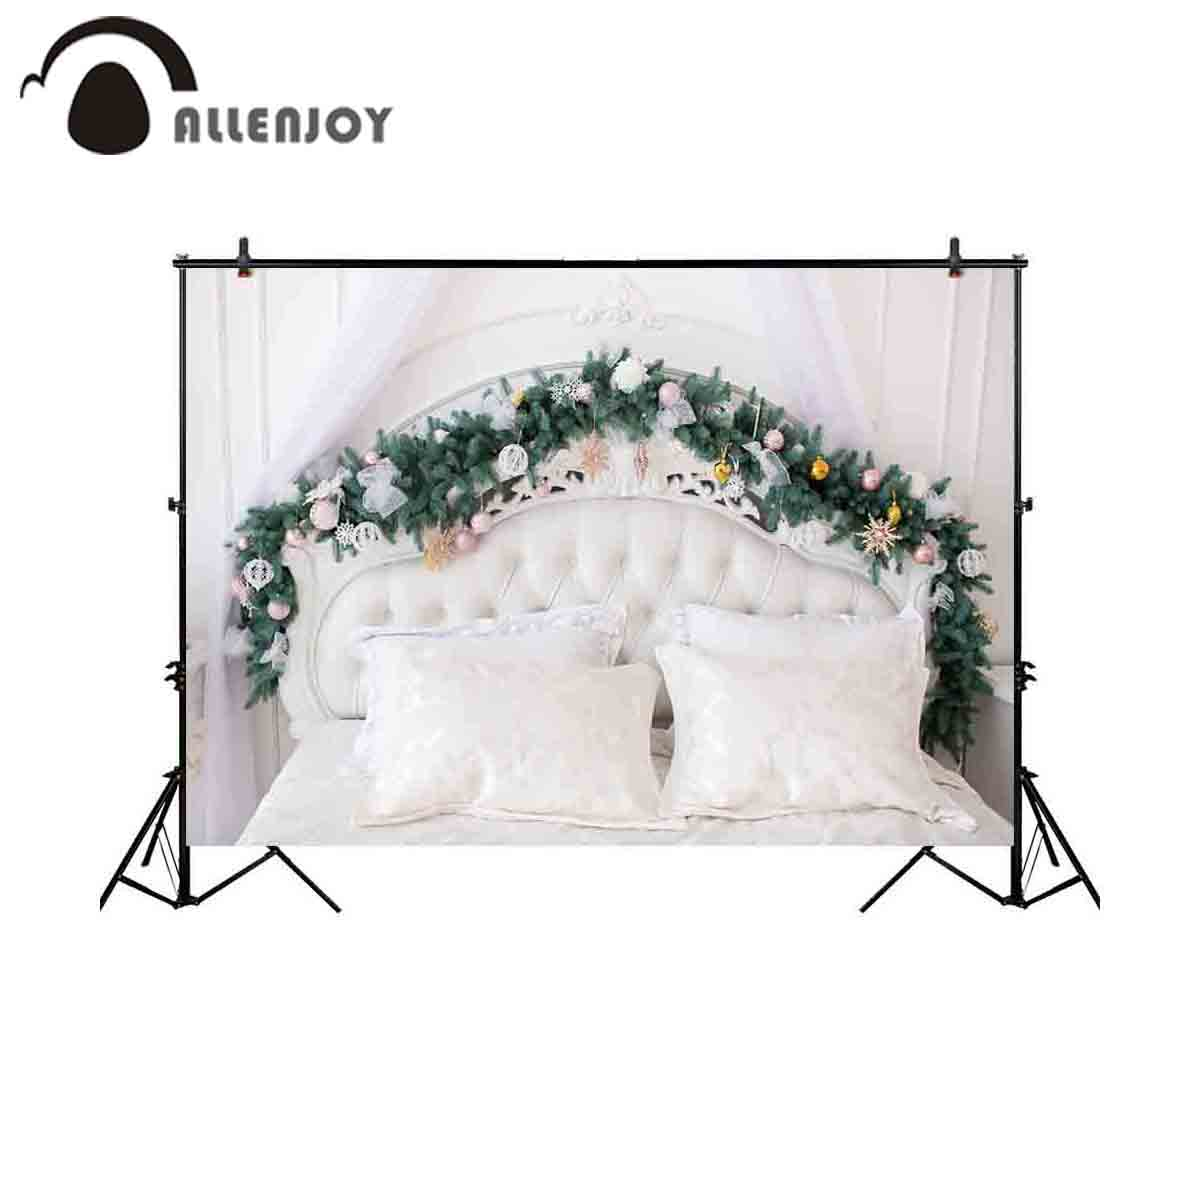 Allenjoy photography background Christmas headboard tufted pine tree leaf backdrop photocall photo studio photobooth fabric цены